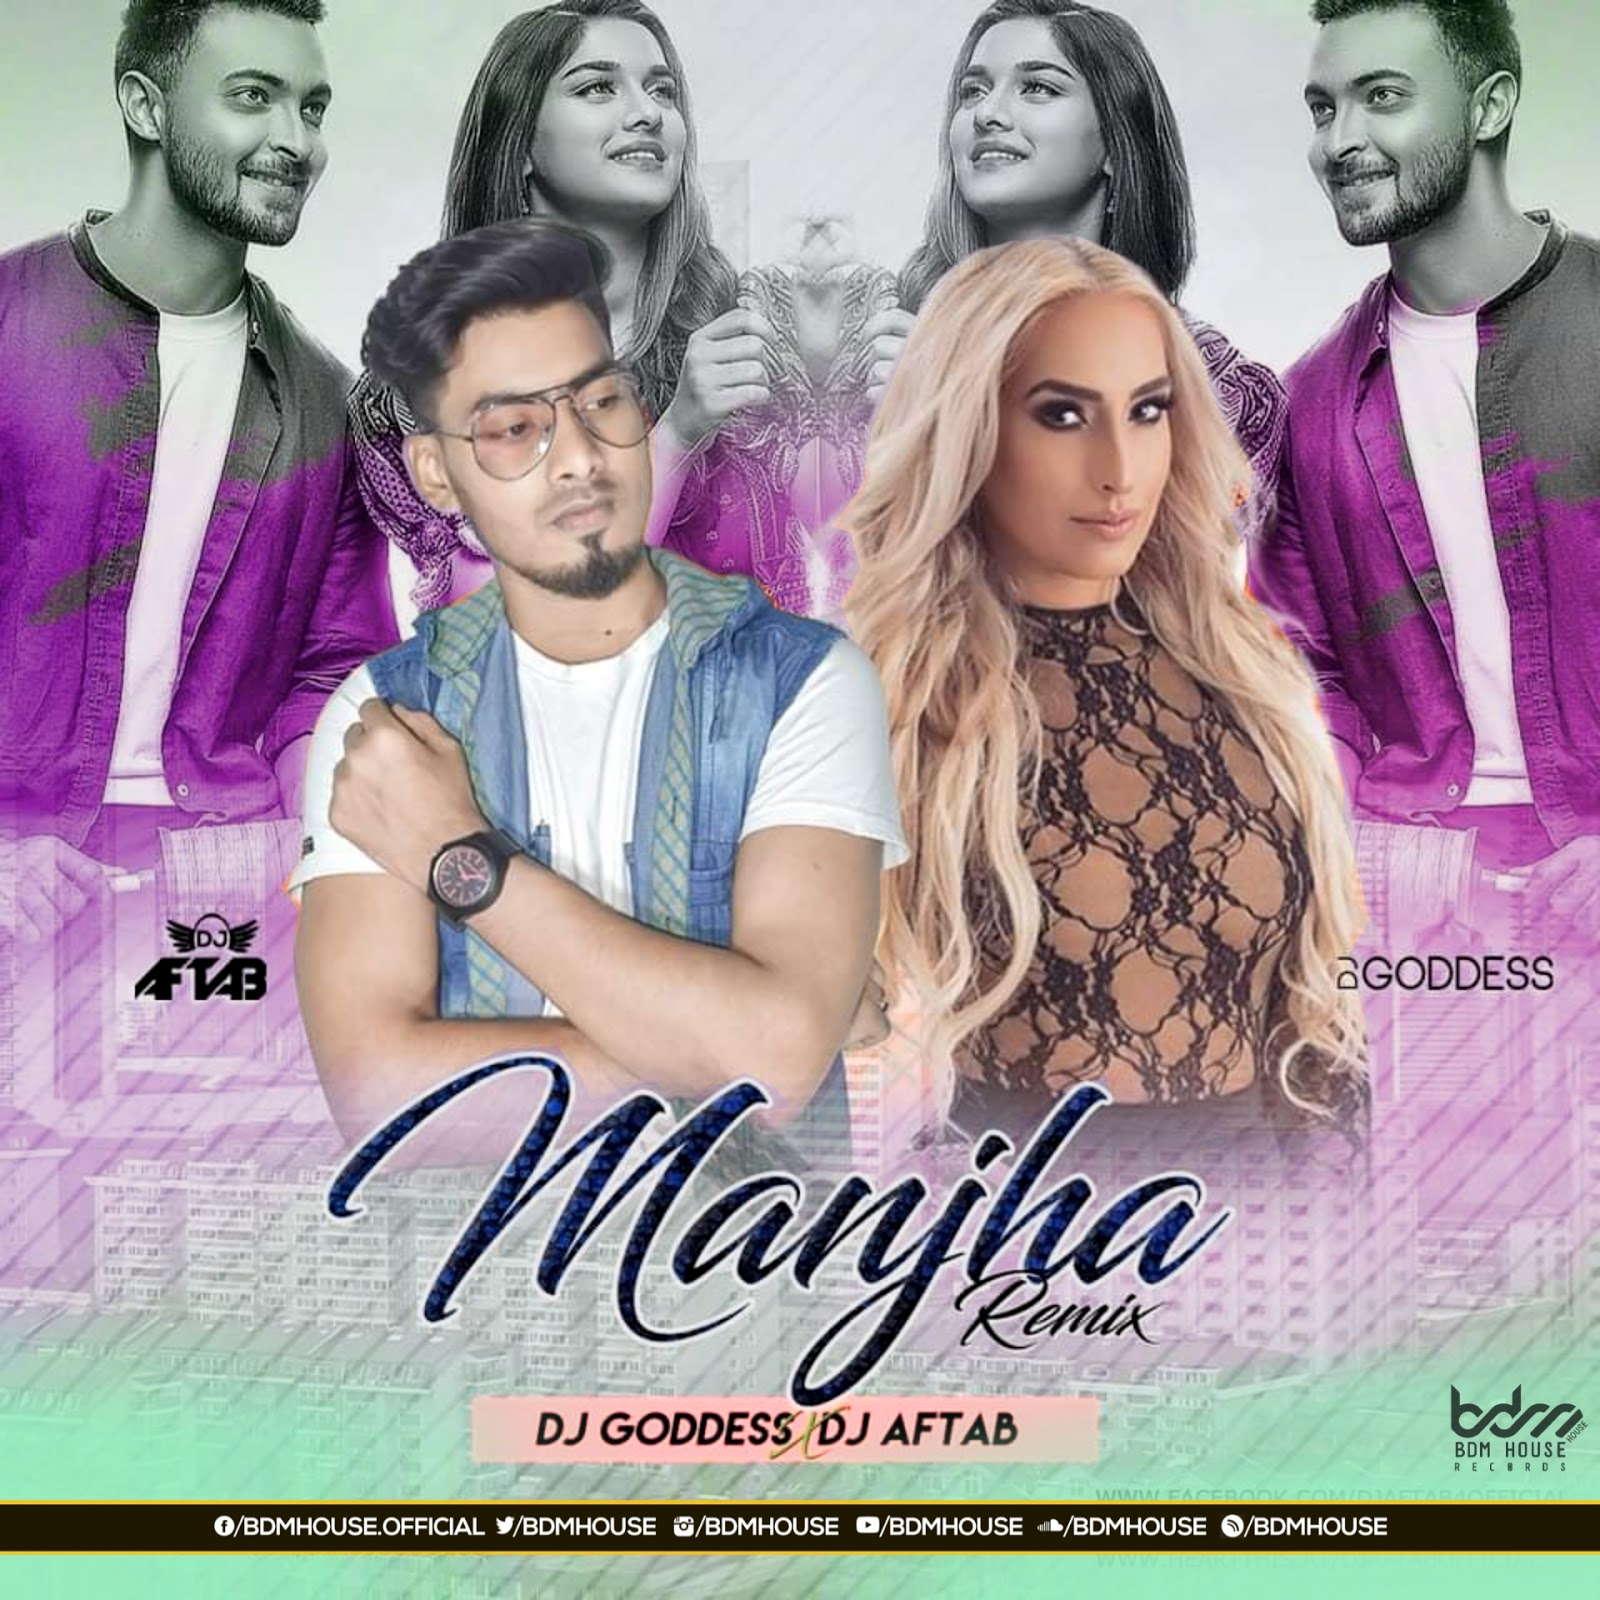 Manjha (Remix) DJ Goddess x DJ Aftab BY BDM HOUSE RECORDS